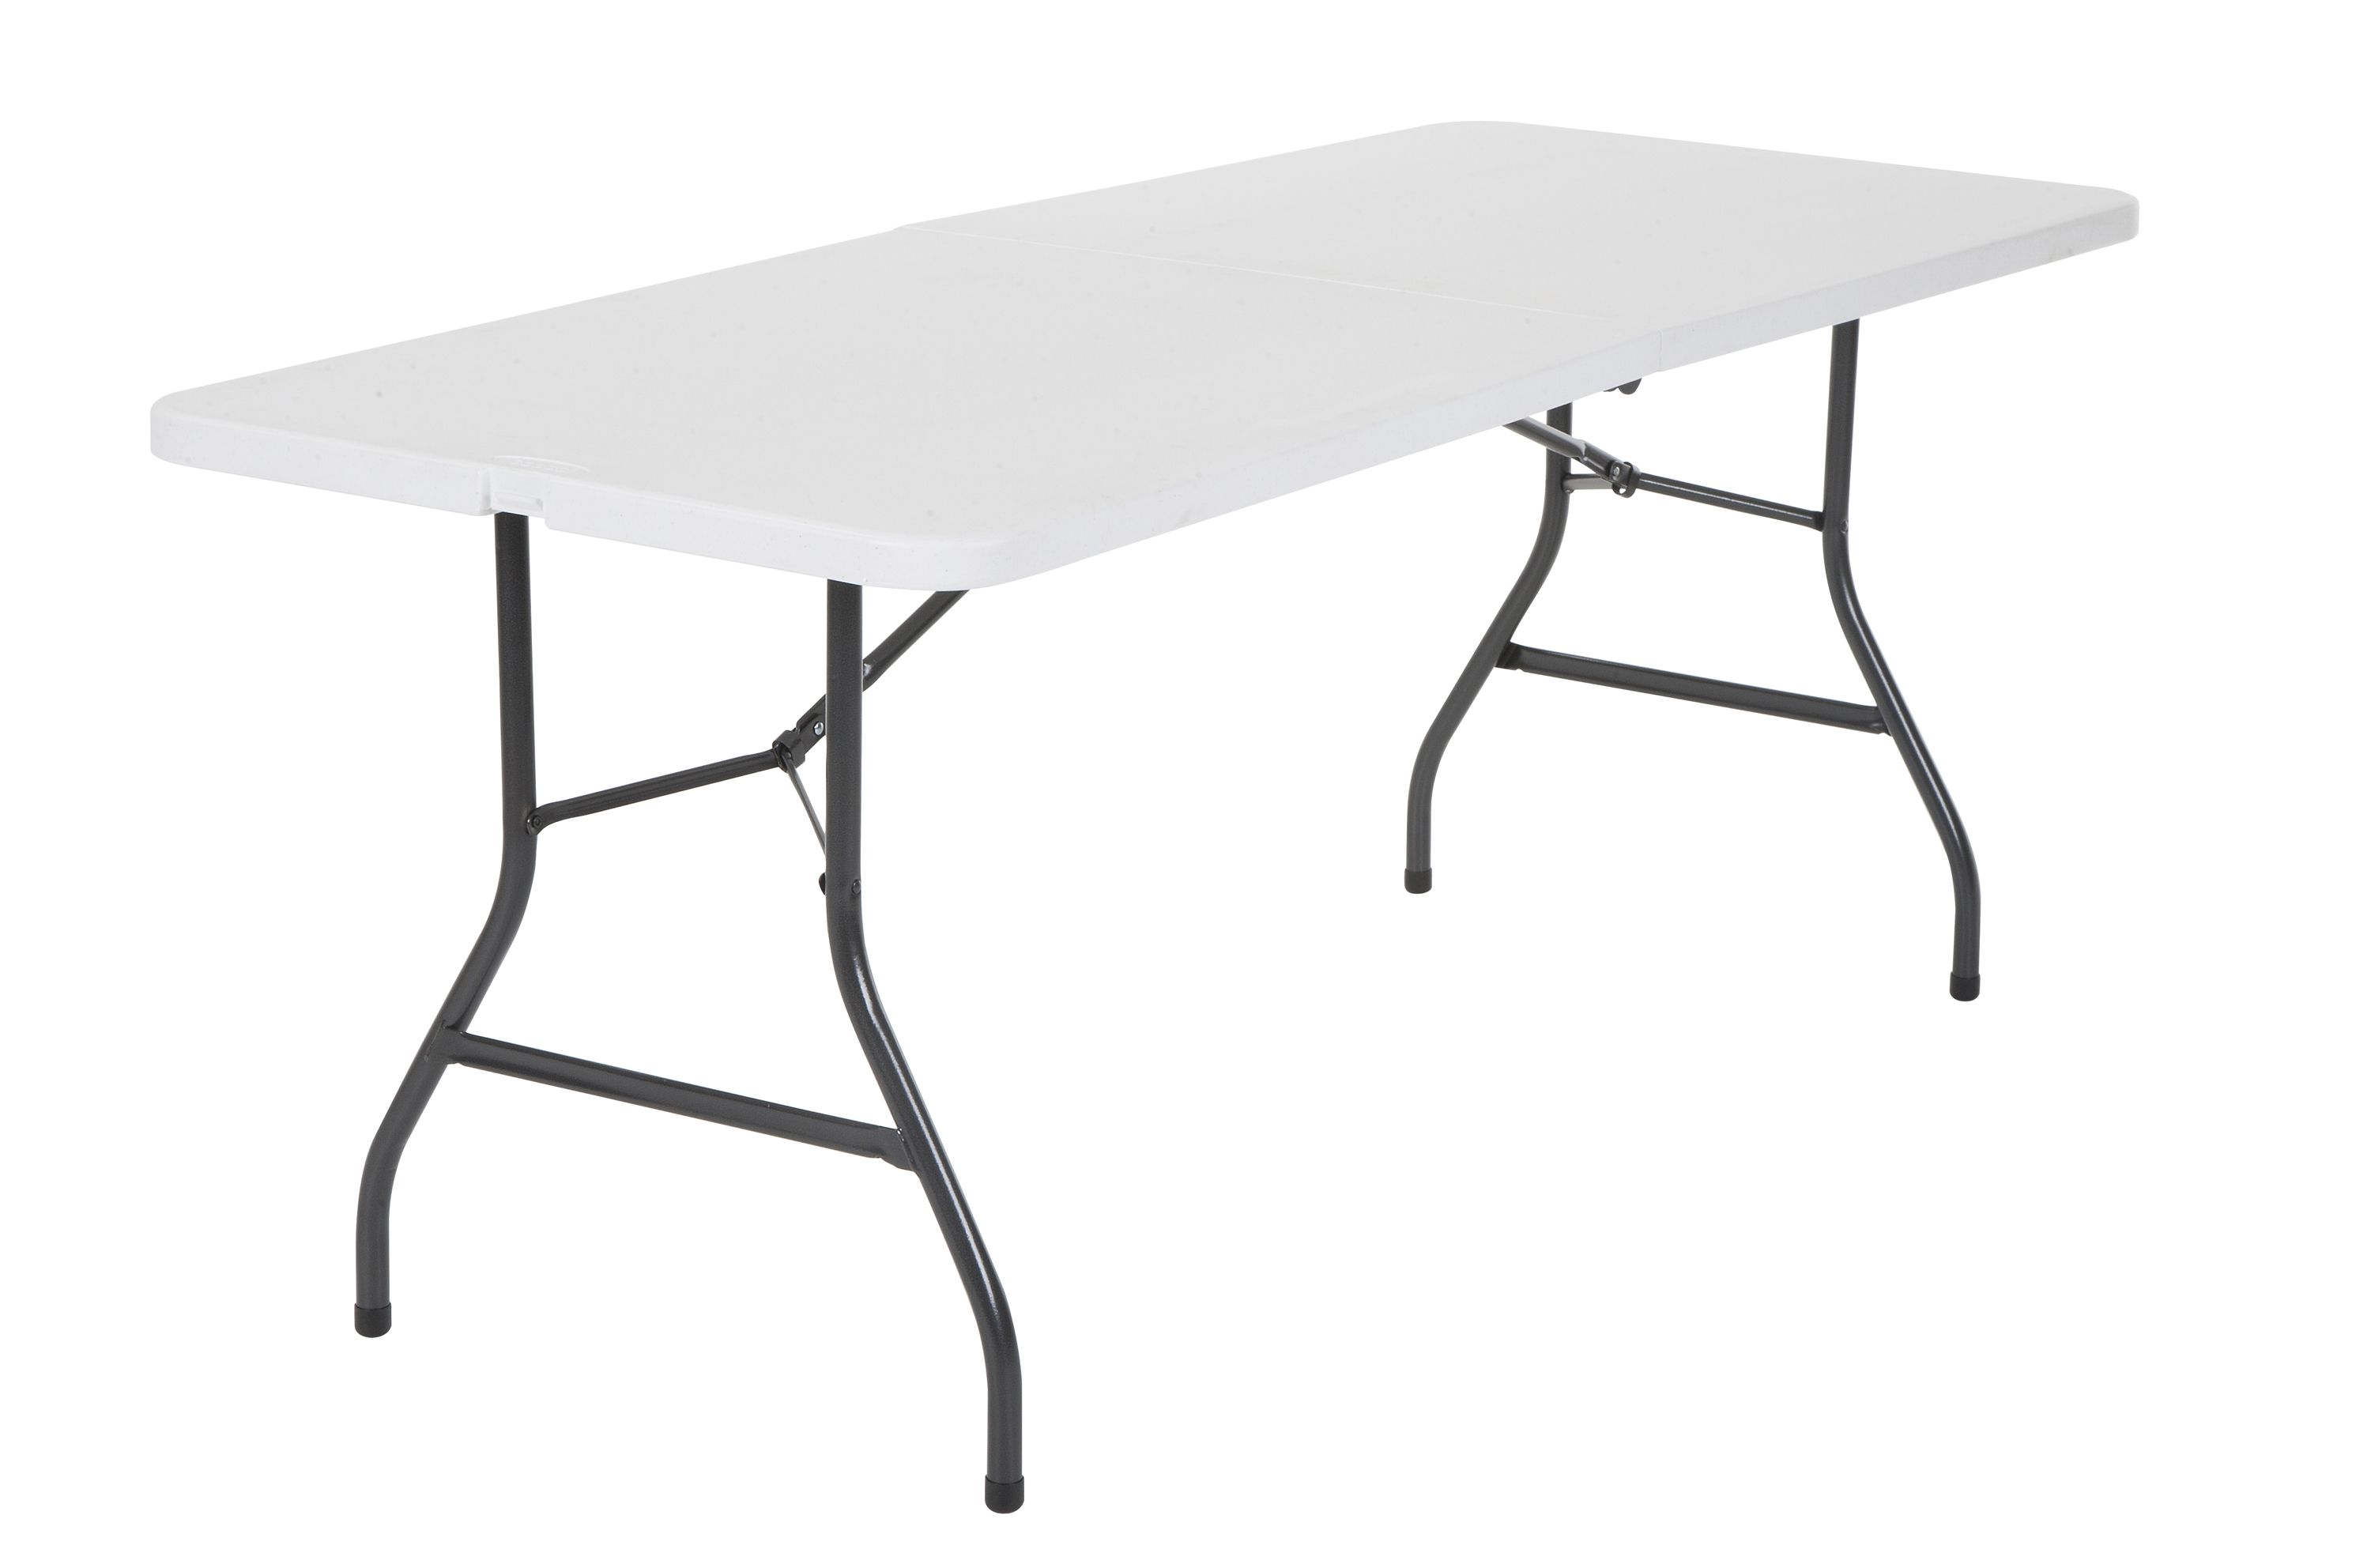 Cosco 6' Centerfold Table, Multiple Colors